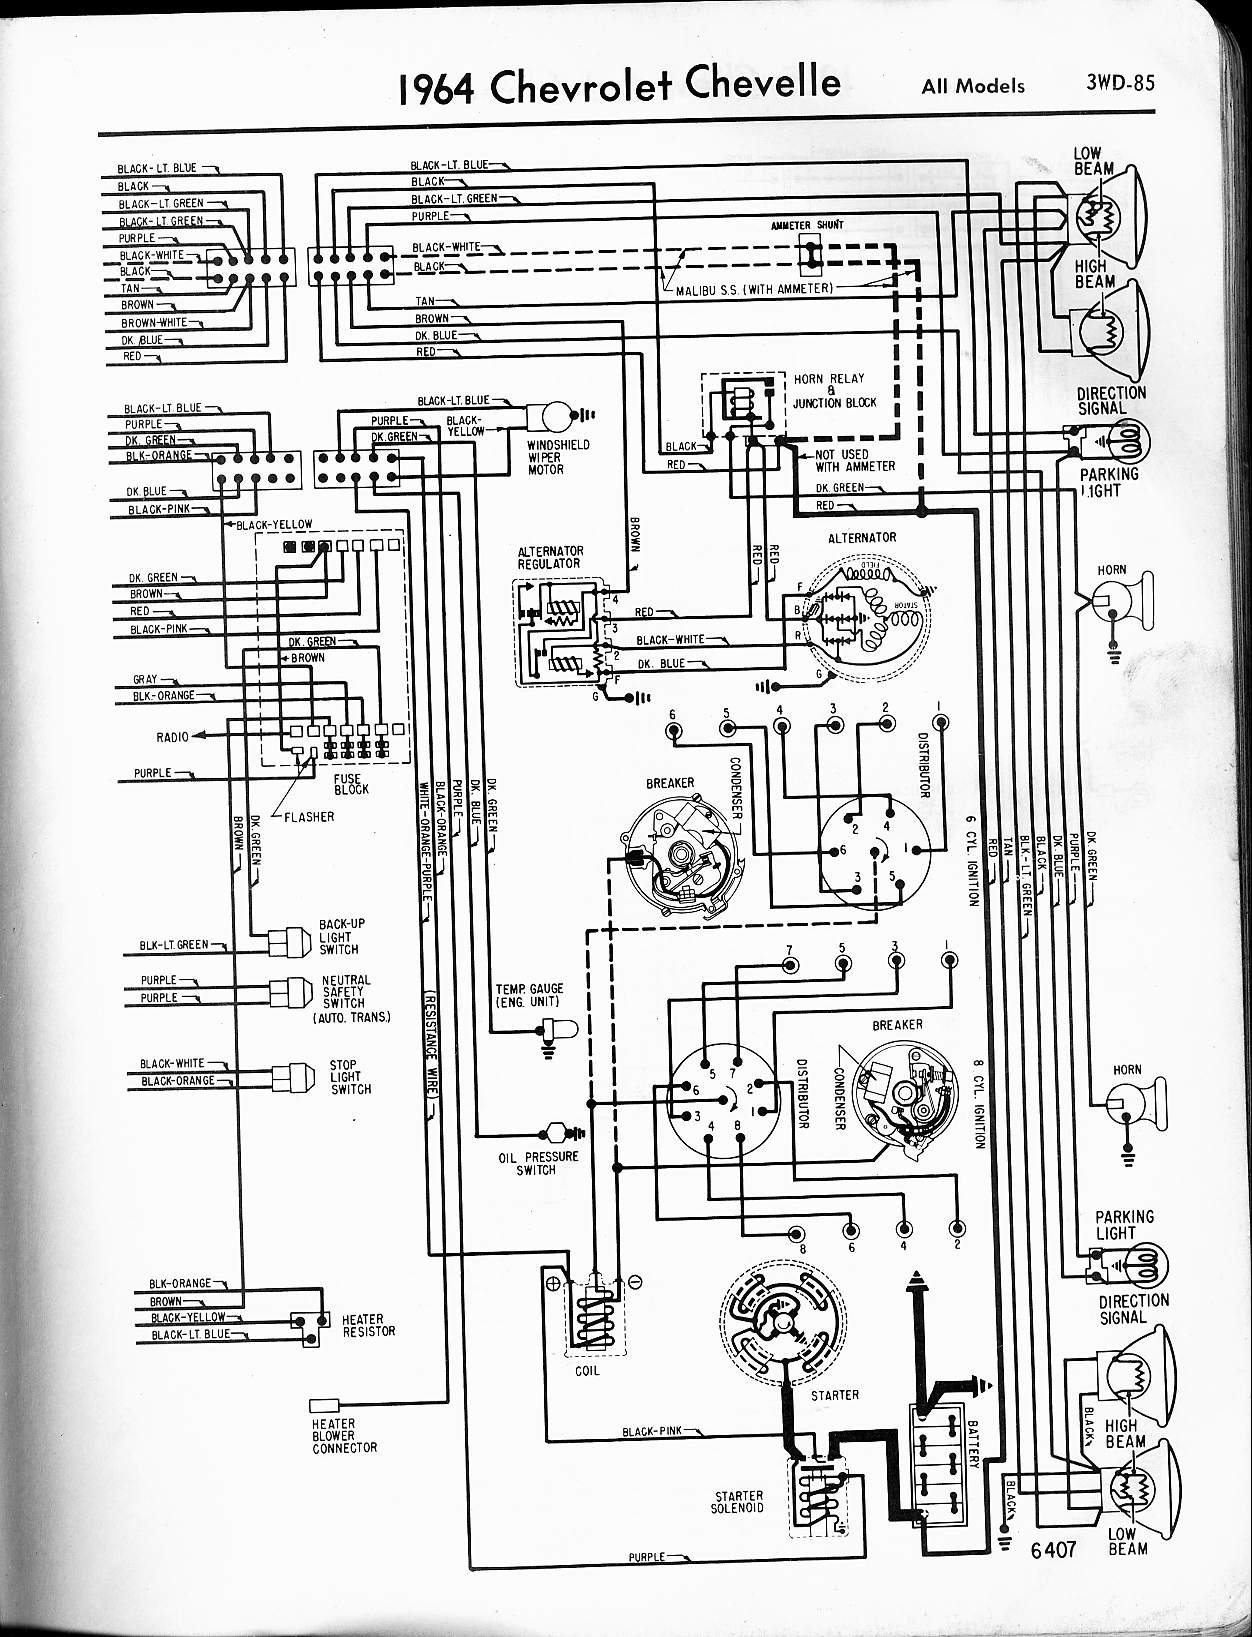 MWireChev64_3WD 085 chevy diagrams 1967 Impala Wiring Diagram at webbmarketing.co